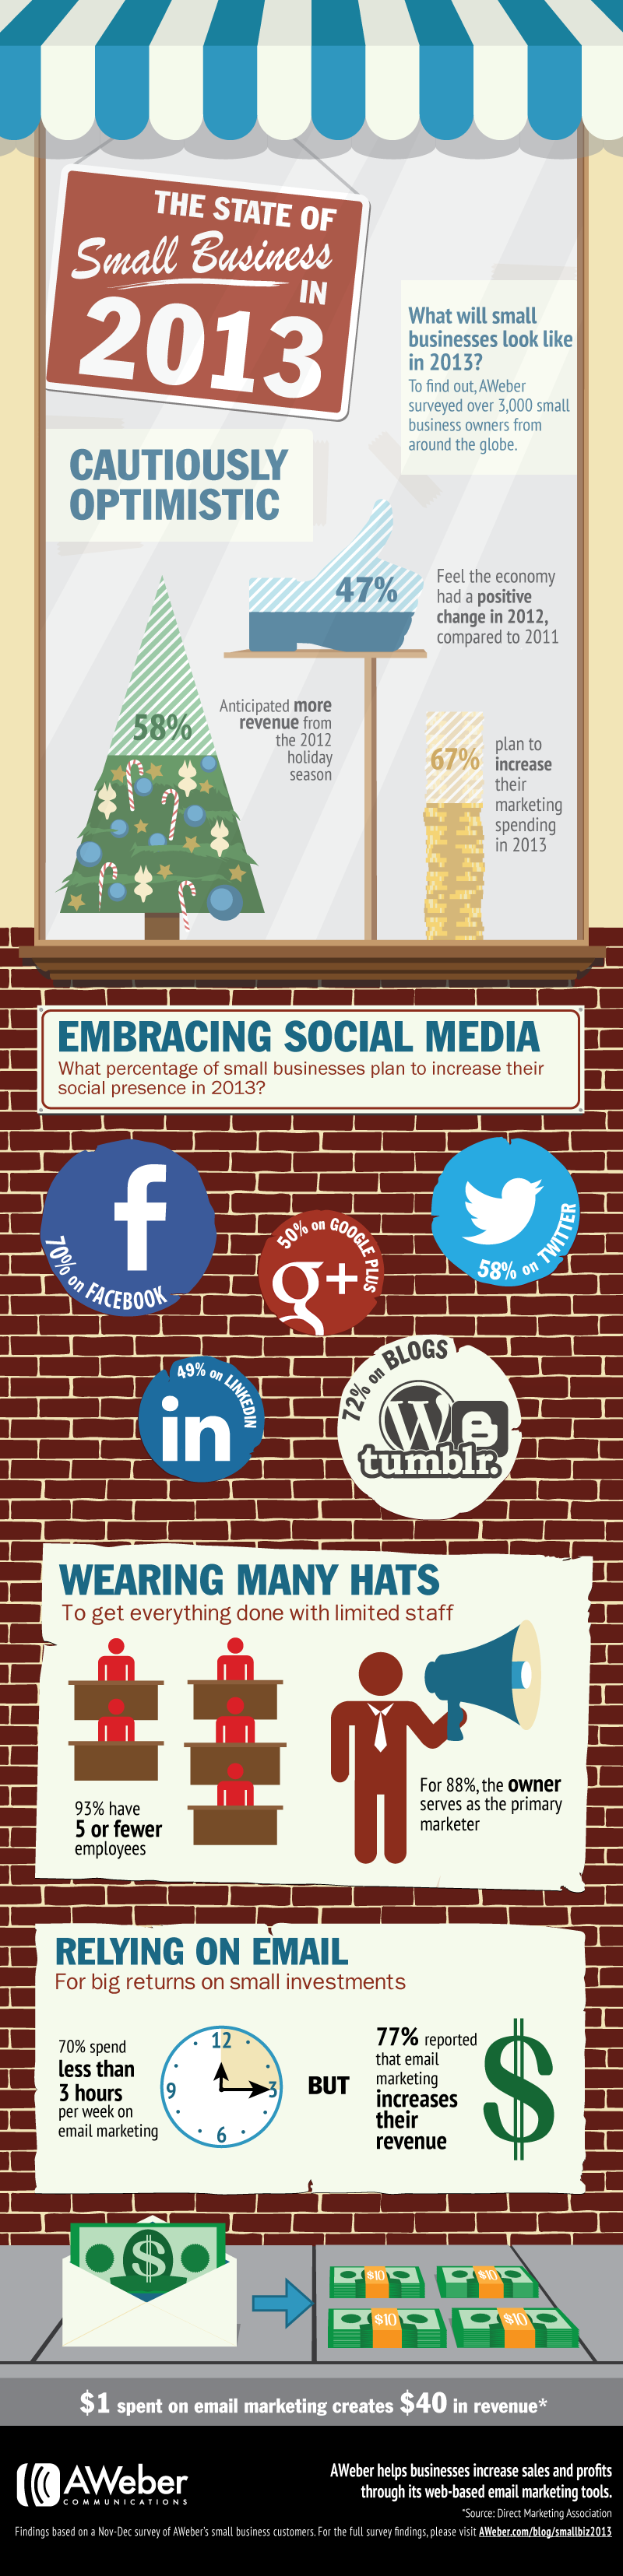 SMB Marketing Trends for 2013